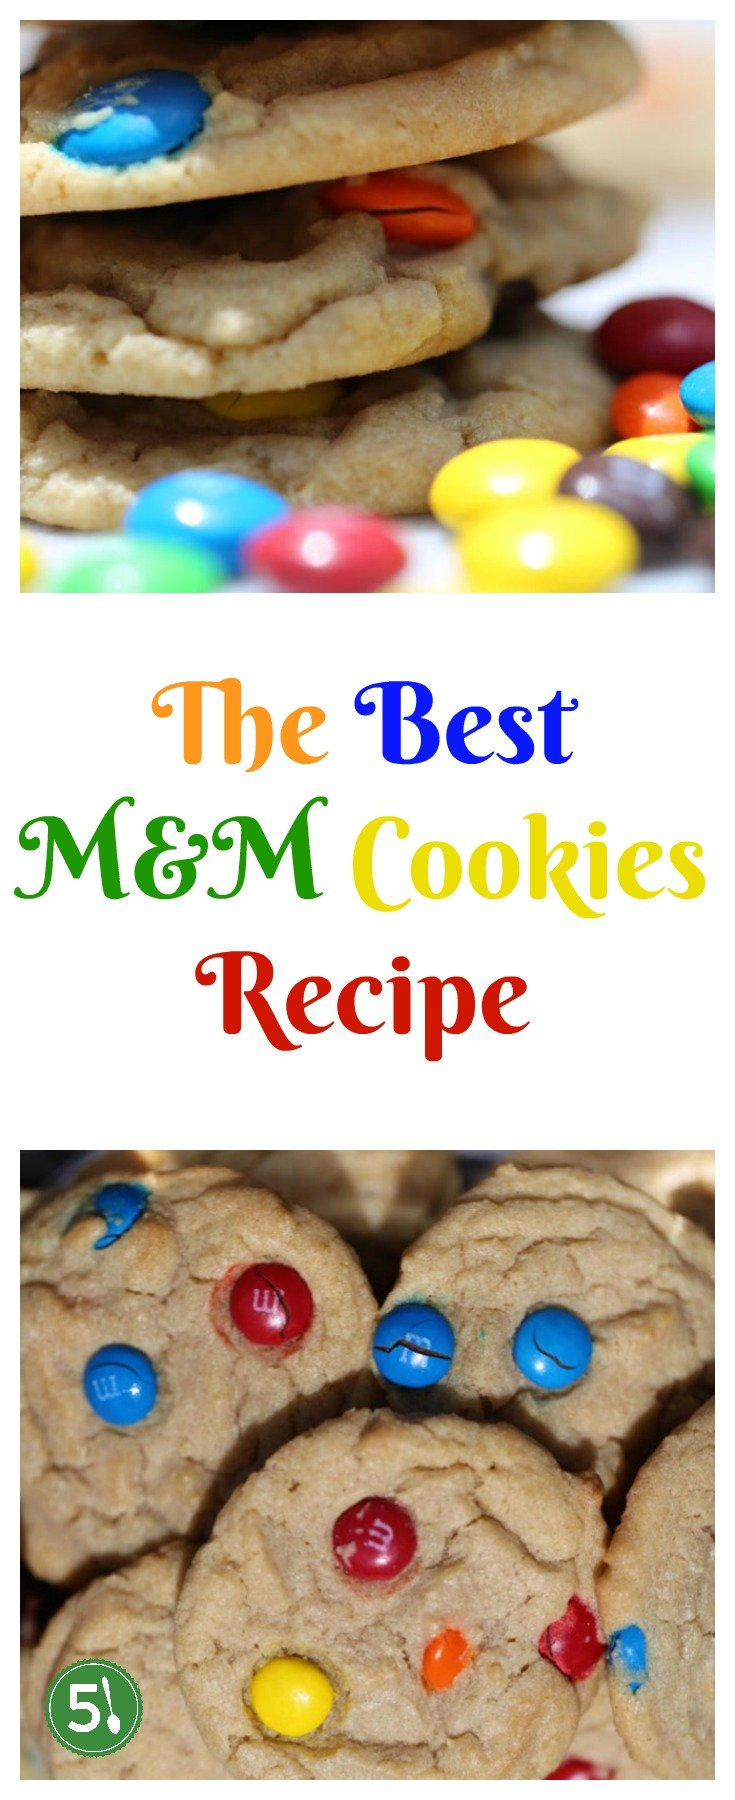 Best M&M cookies recipe for learning how to make soft and chewy M&M cookies that are easy and quick to whip up.